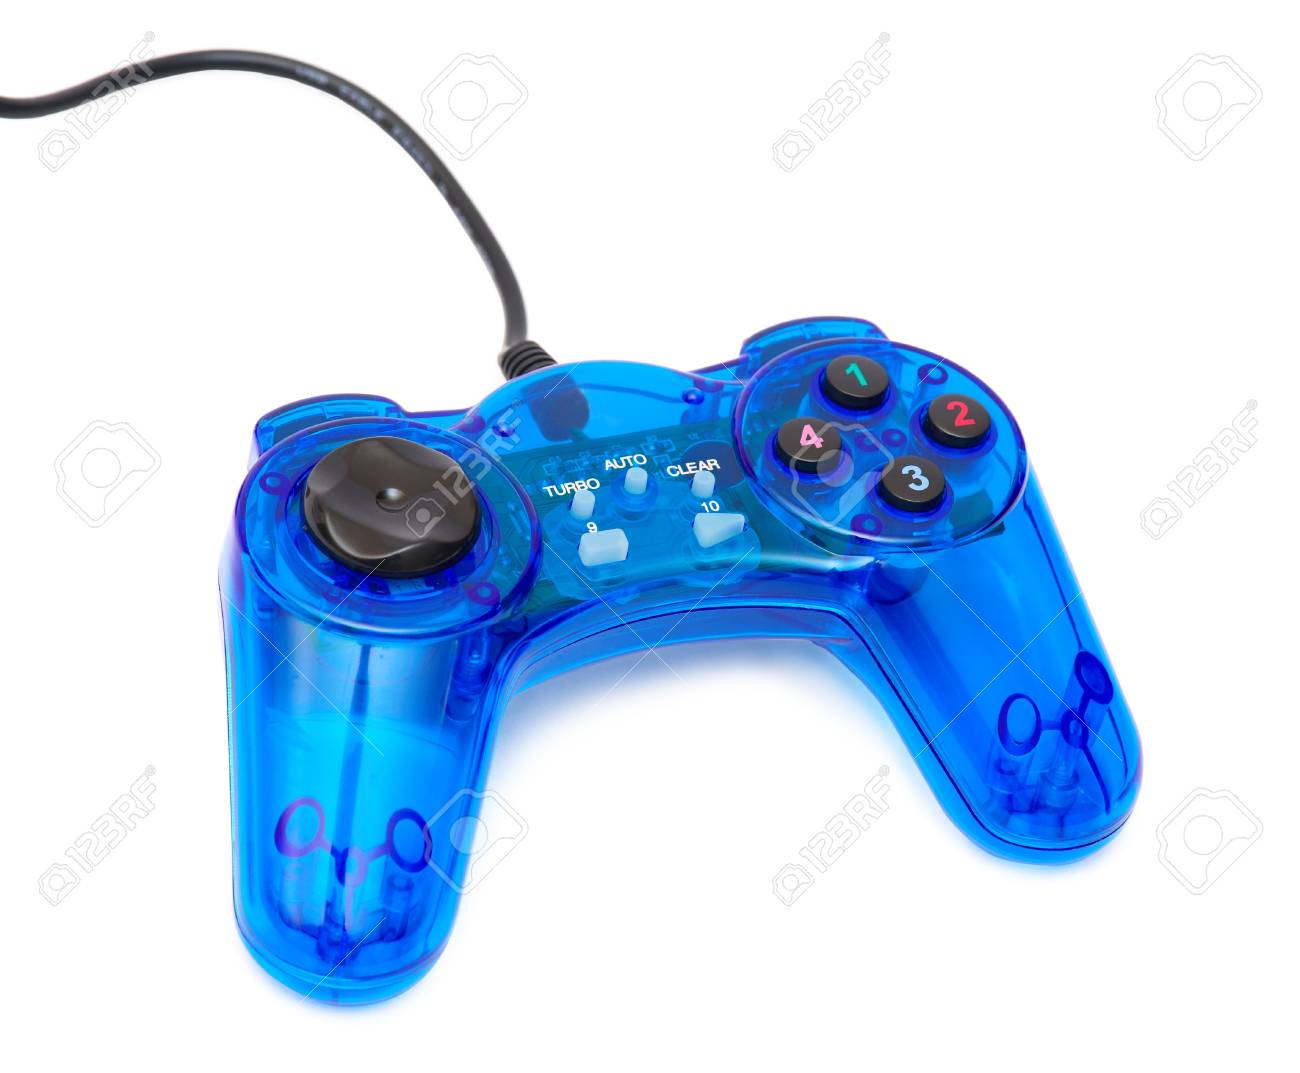 The blue glass game controler on a white background Stock Photo - 8785948